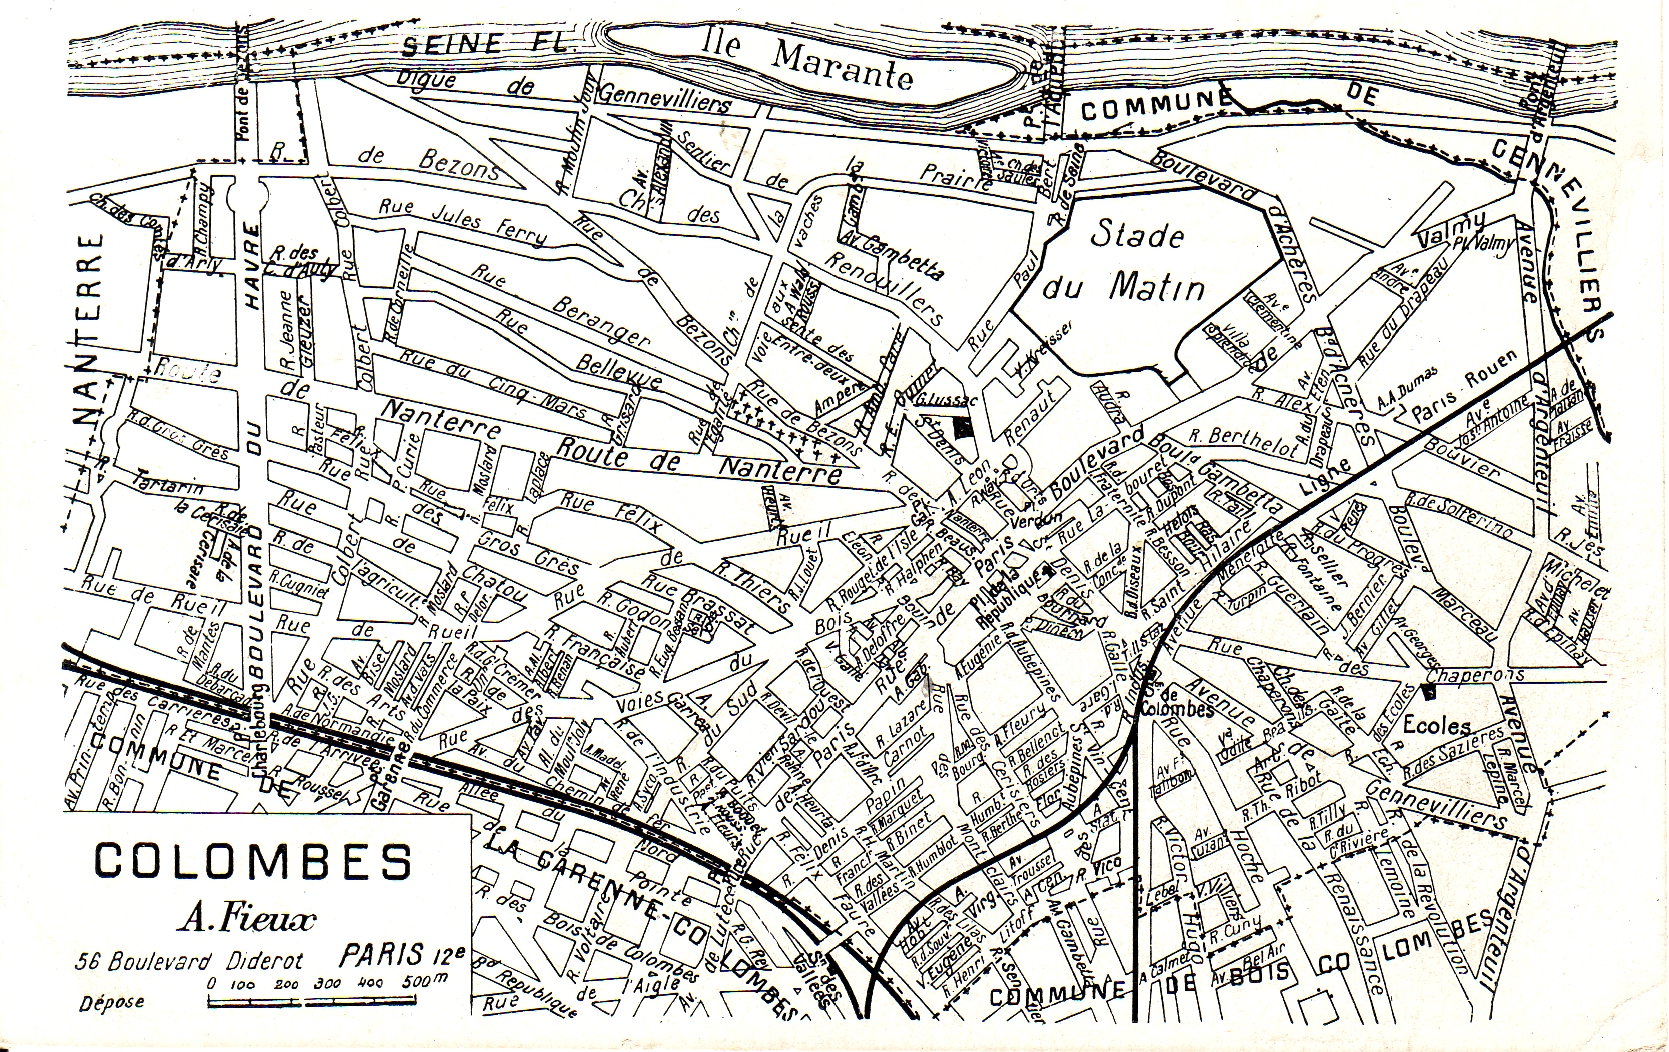 Plan de Colombes en 1936.